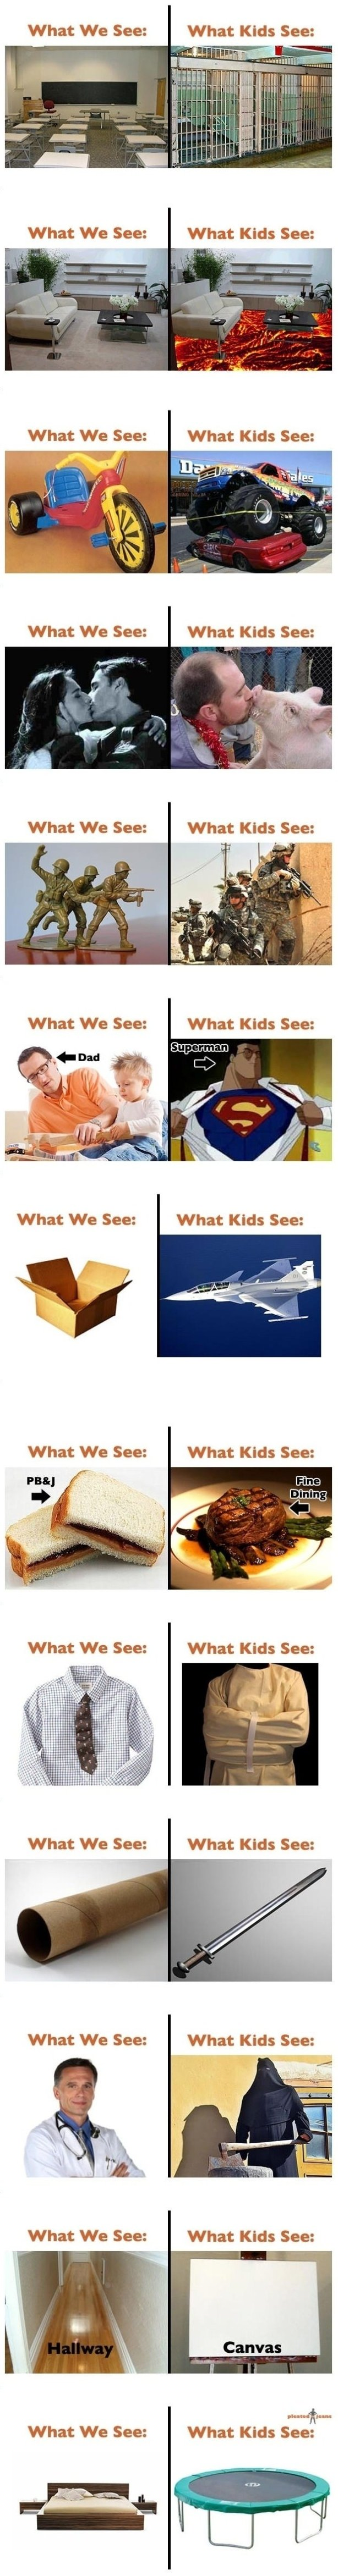 LOLPics-What-we-see